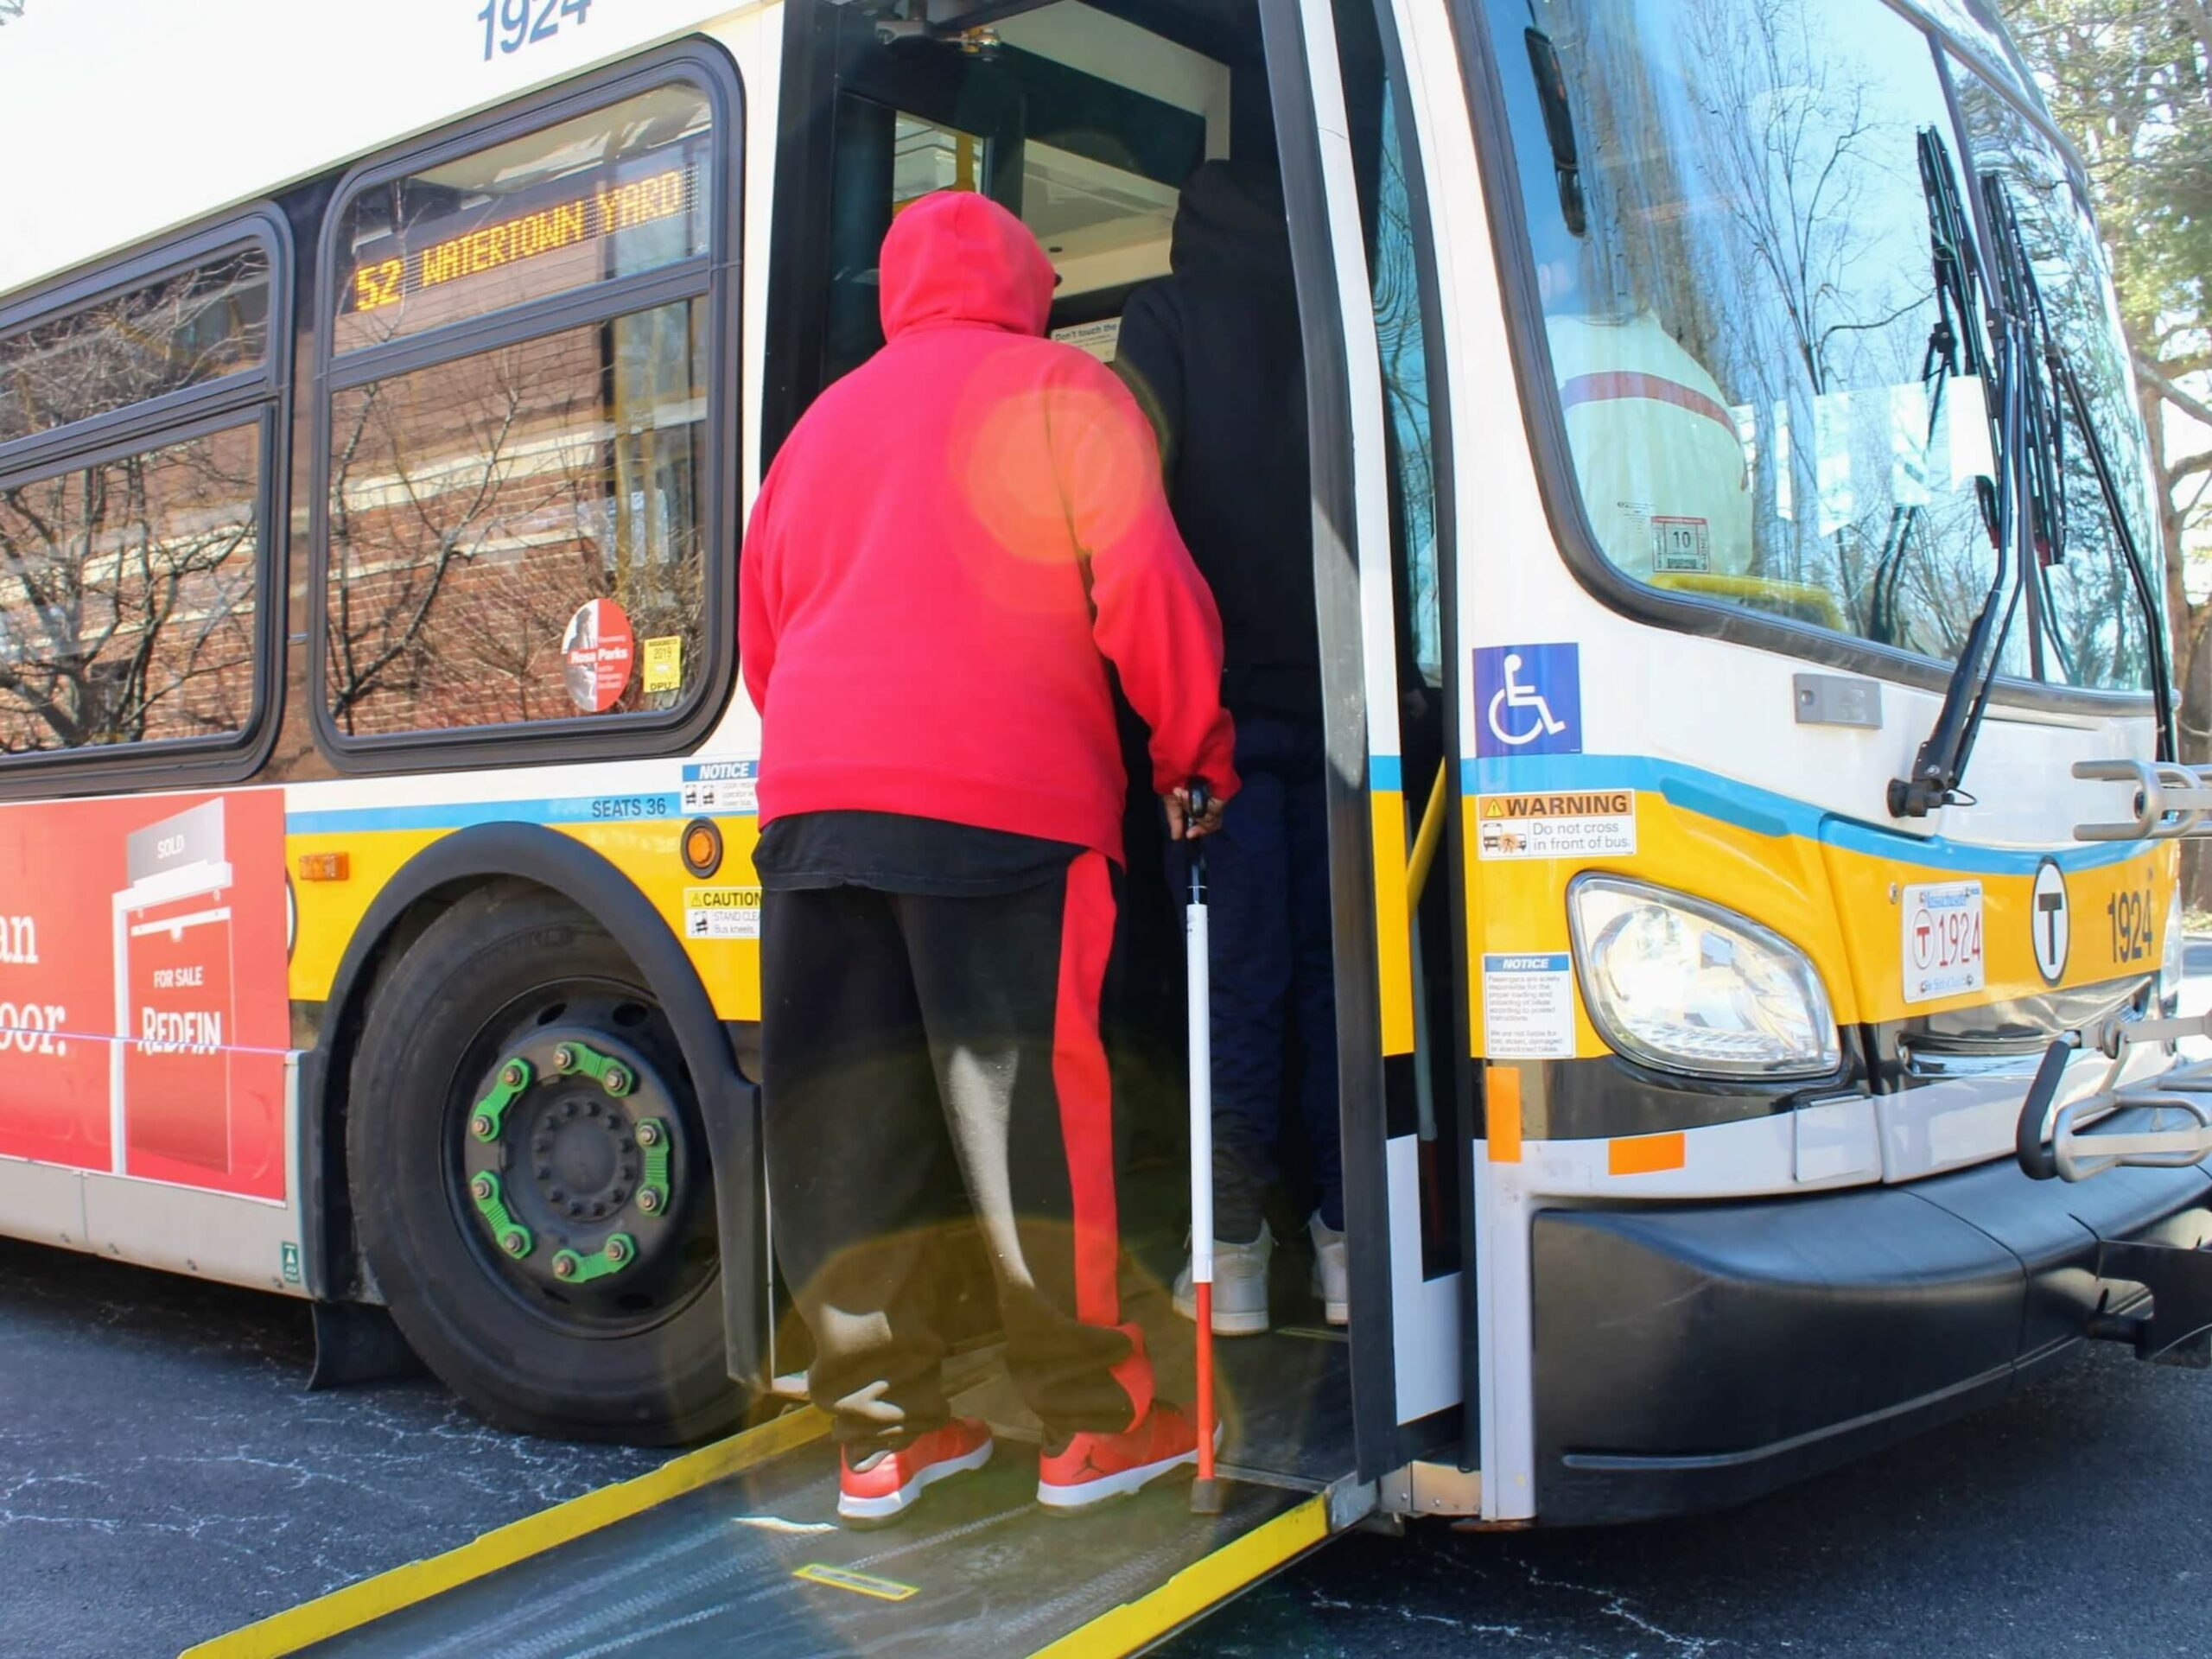 During an MBTA Travel Training accessibility session held in the Carroll Center for the Blind's parking lot, a client steps onto a new 52 bus.